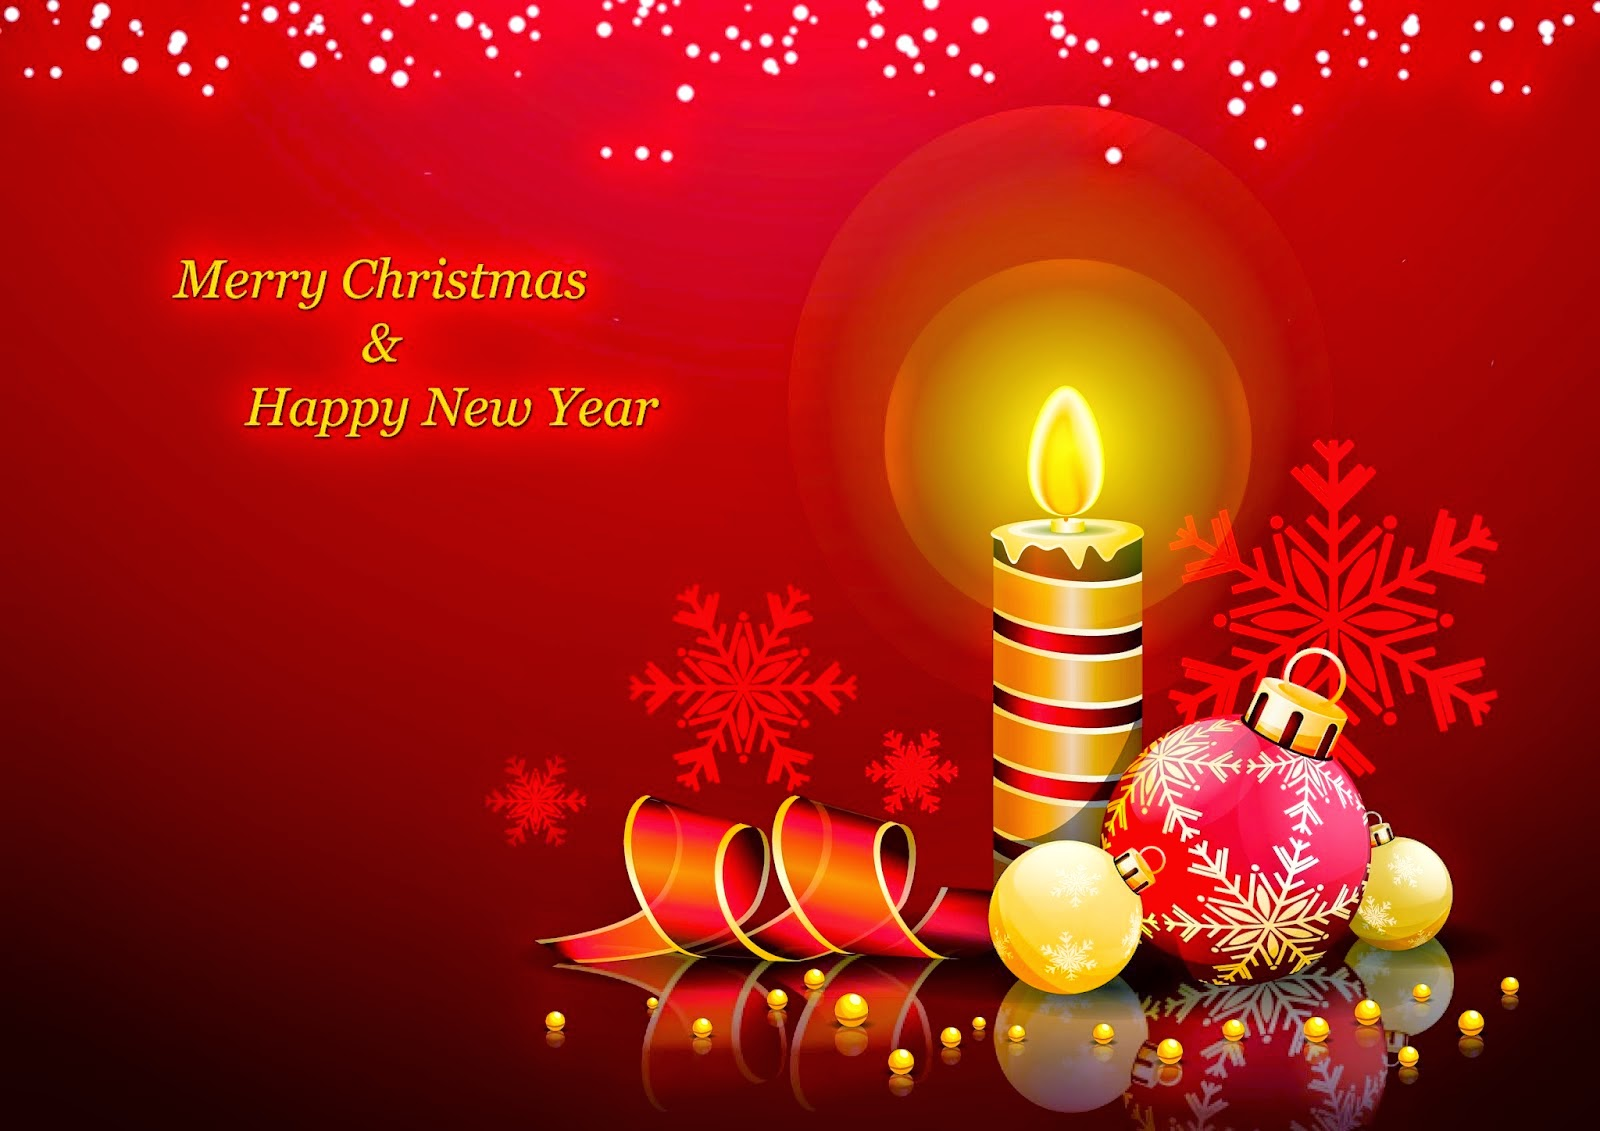 Greeting Cards are very special during the eve of Christmas. SO here by our website MerryXchristmas.com provides you a collection of Merry Christmas Greeting Cards and Happy Christmas Greeting Cards. Select the best Christmas greeting card out of the below collection and send to you friends family and relatives. Have a Happy Christmas, do share our blog post with your friends if you like it. than you. cheers Merry Christmas Greeting...